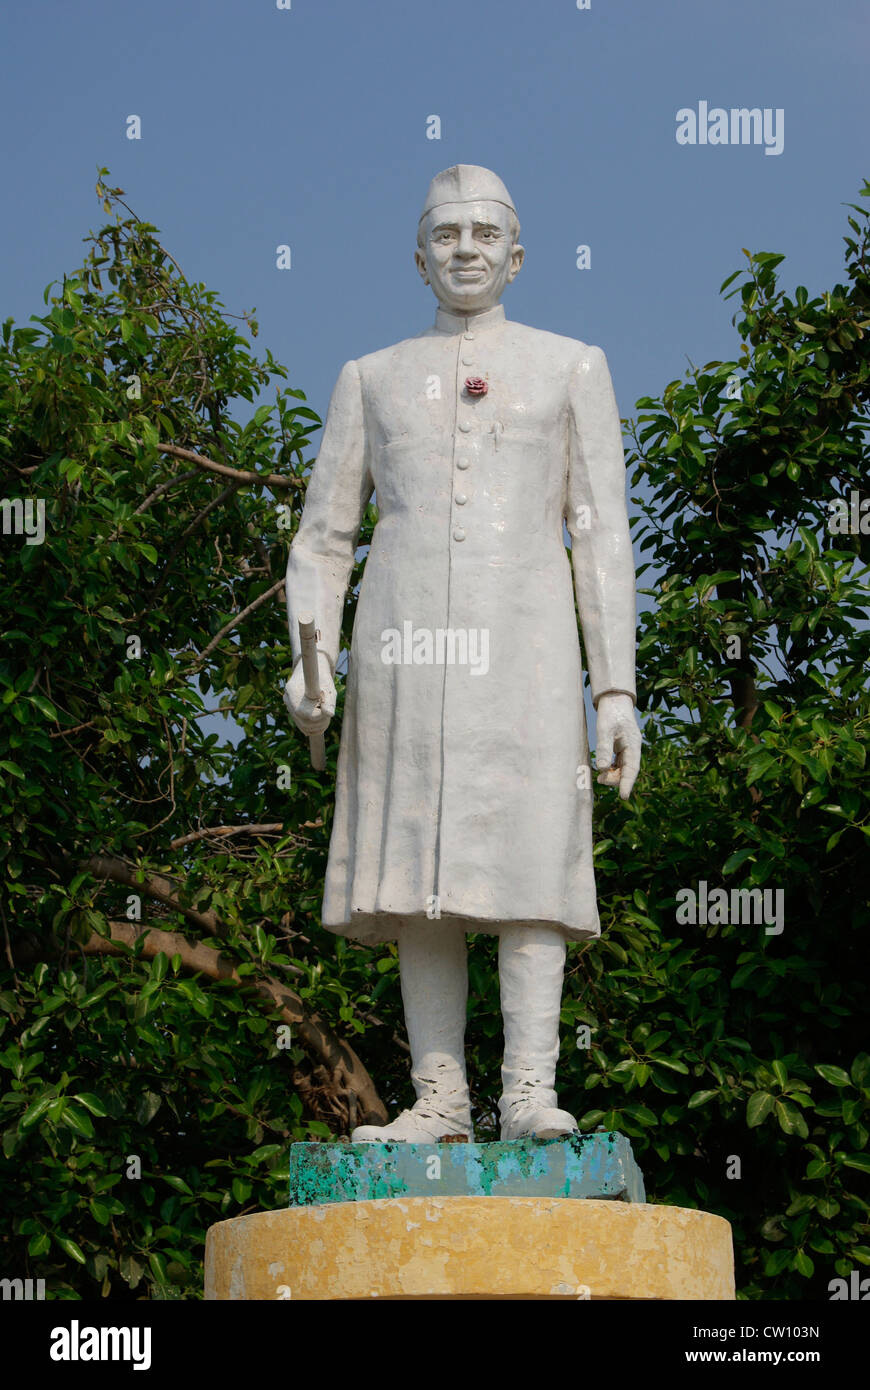 Jawaharlal Nehru Sculpture Monument in Pondicherry puducherry Tamil Nadu India.First Indian Prime Minister and Political - Stock Image